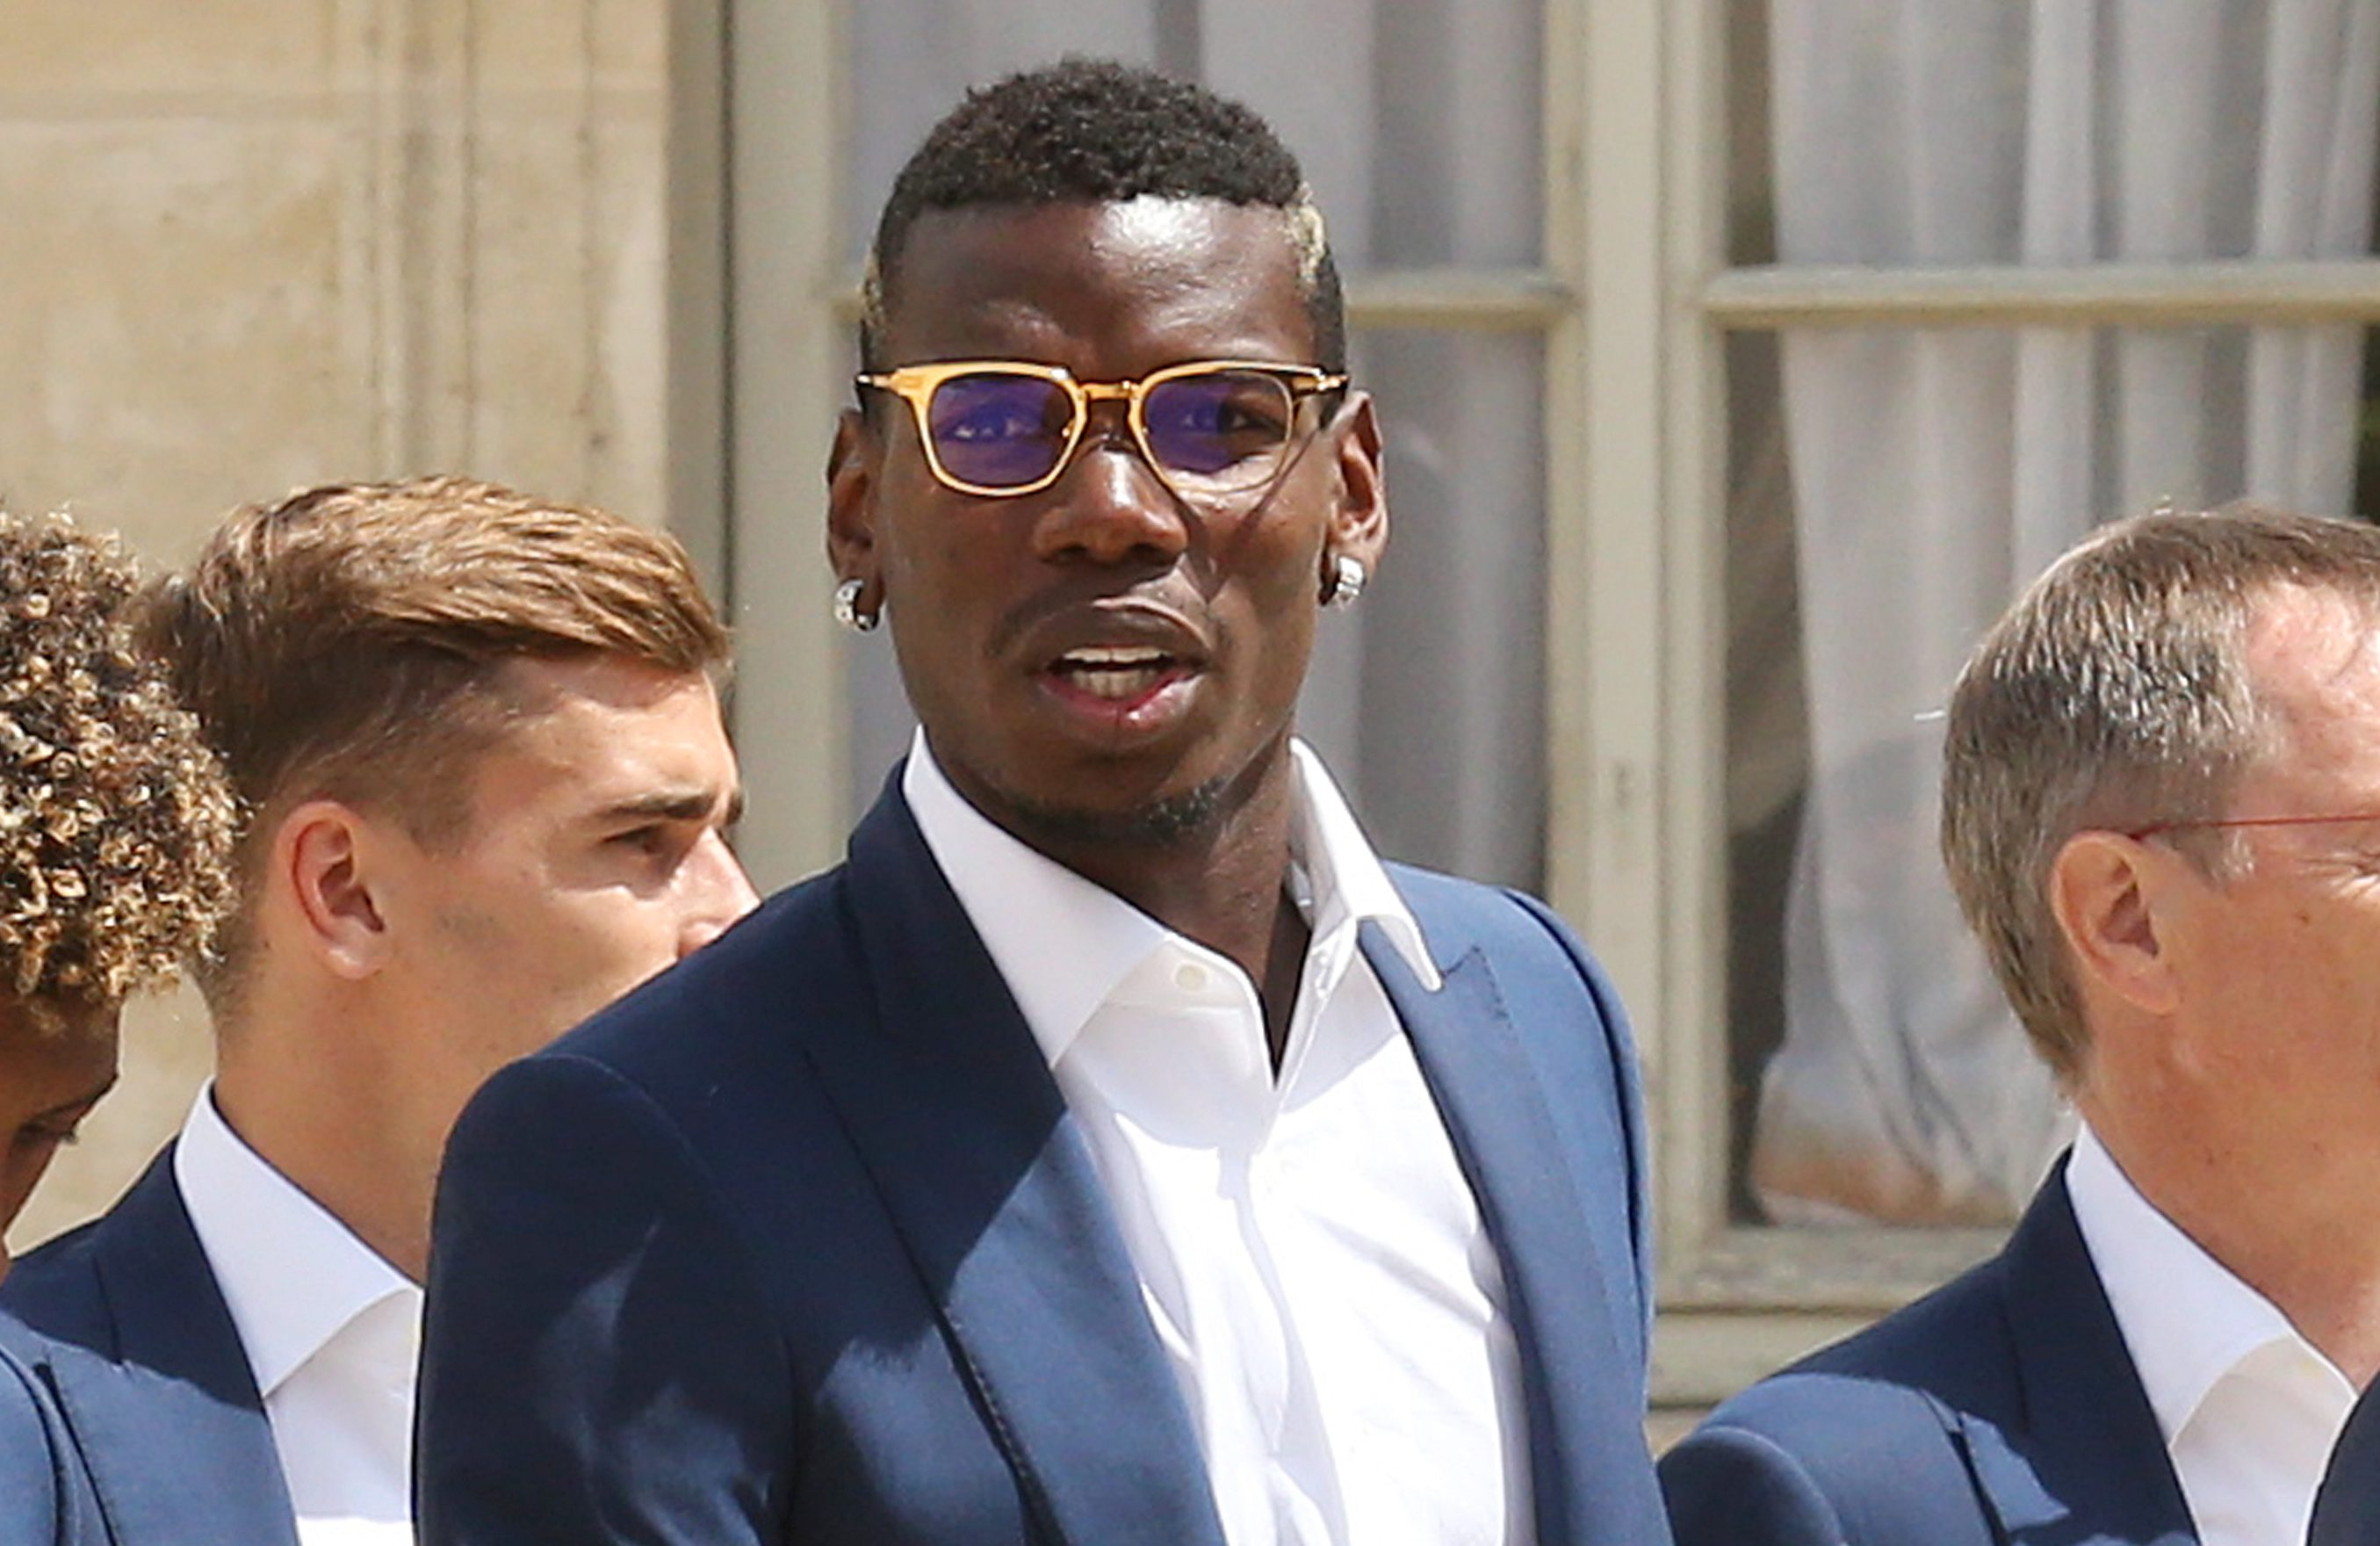 PARIS, FRANCE - JULY 11: Paul Pogba and teammates arrive at Elysee Palace for a lunch with President of France Francois Hollande on July 11, 2016 in Paris, France. (Photo by Jean Catuffe/Getty Images)